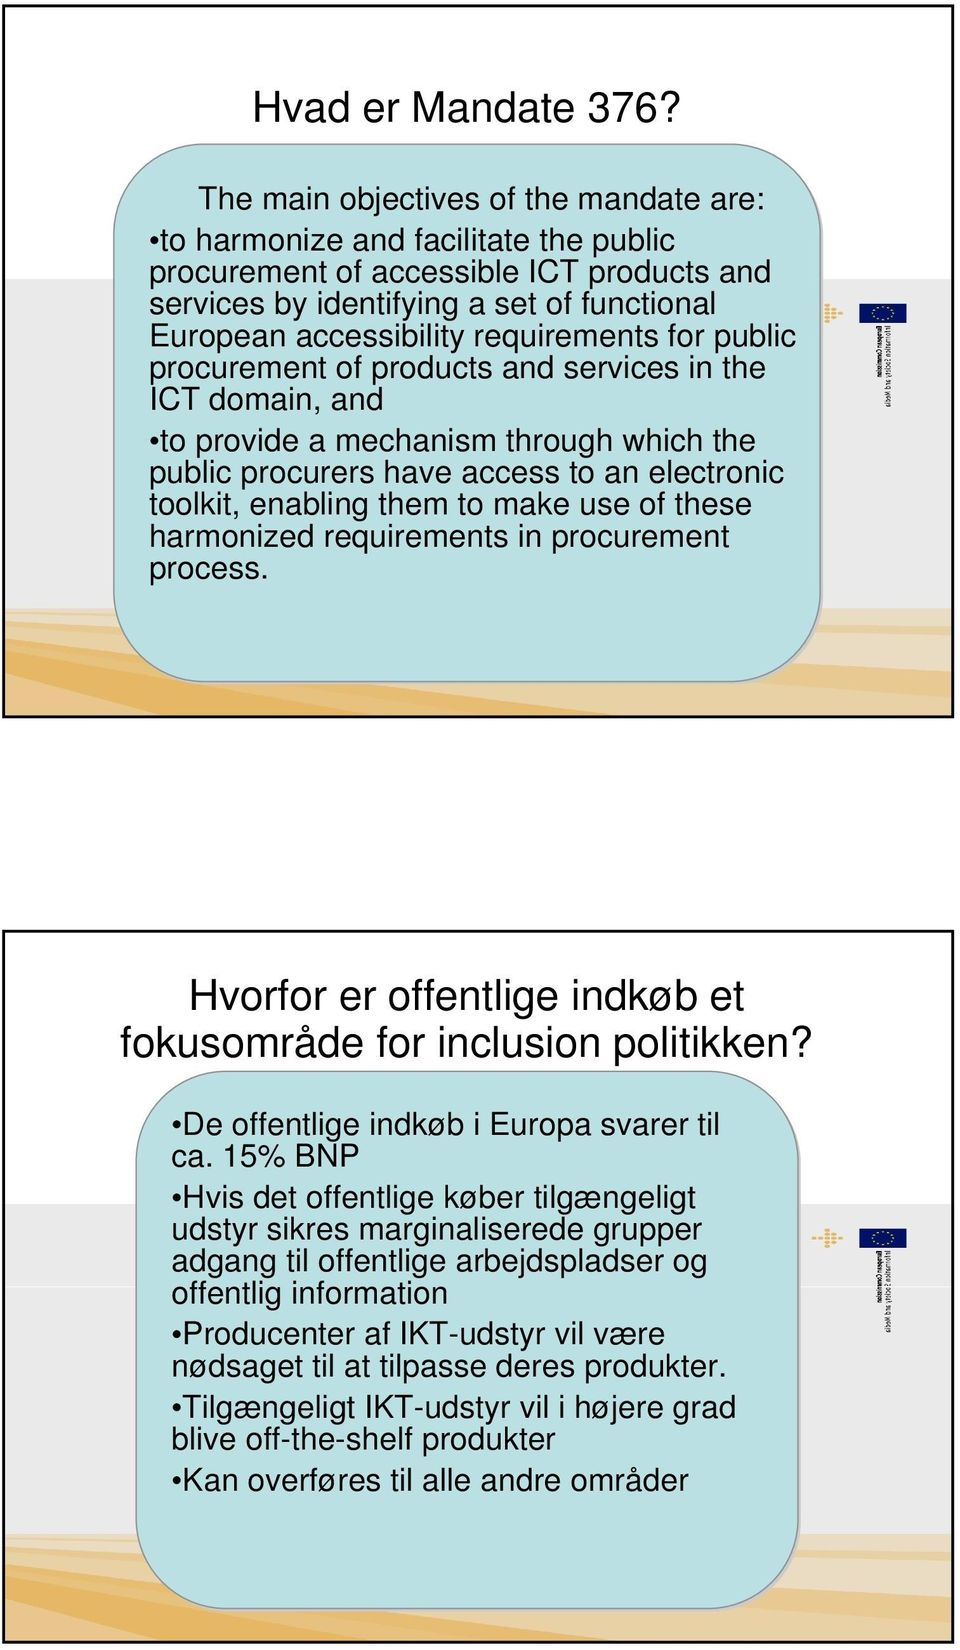 requirements for public procurement of products and services in the ICT domain, and to provide a mechanism through which the public procurers have access to an electronic toolkit, enabling them to